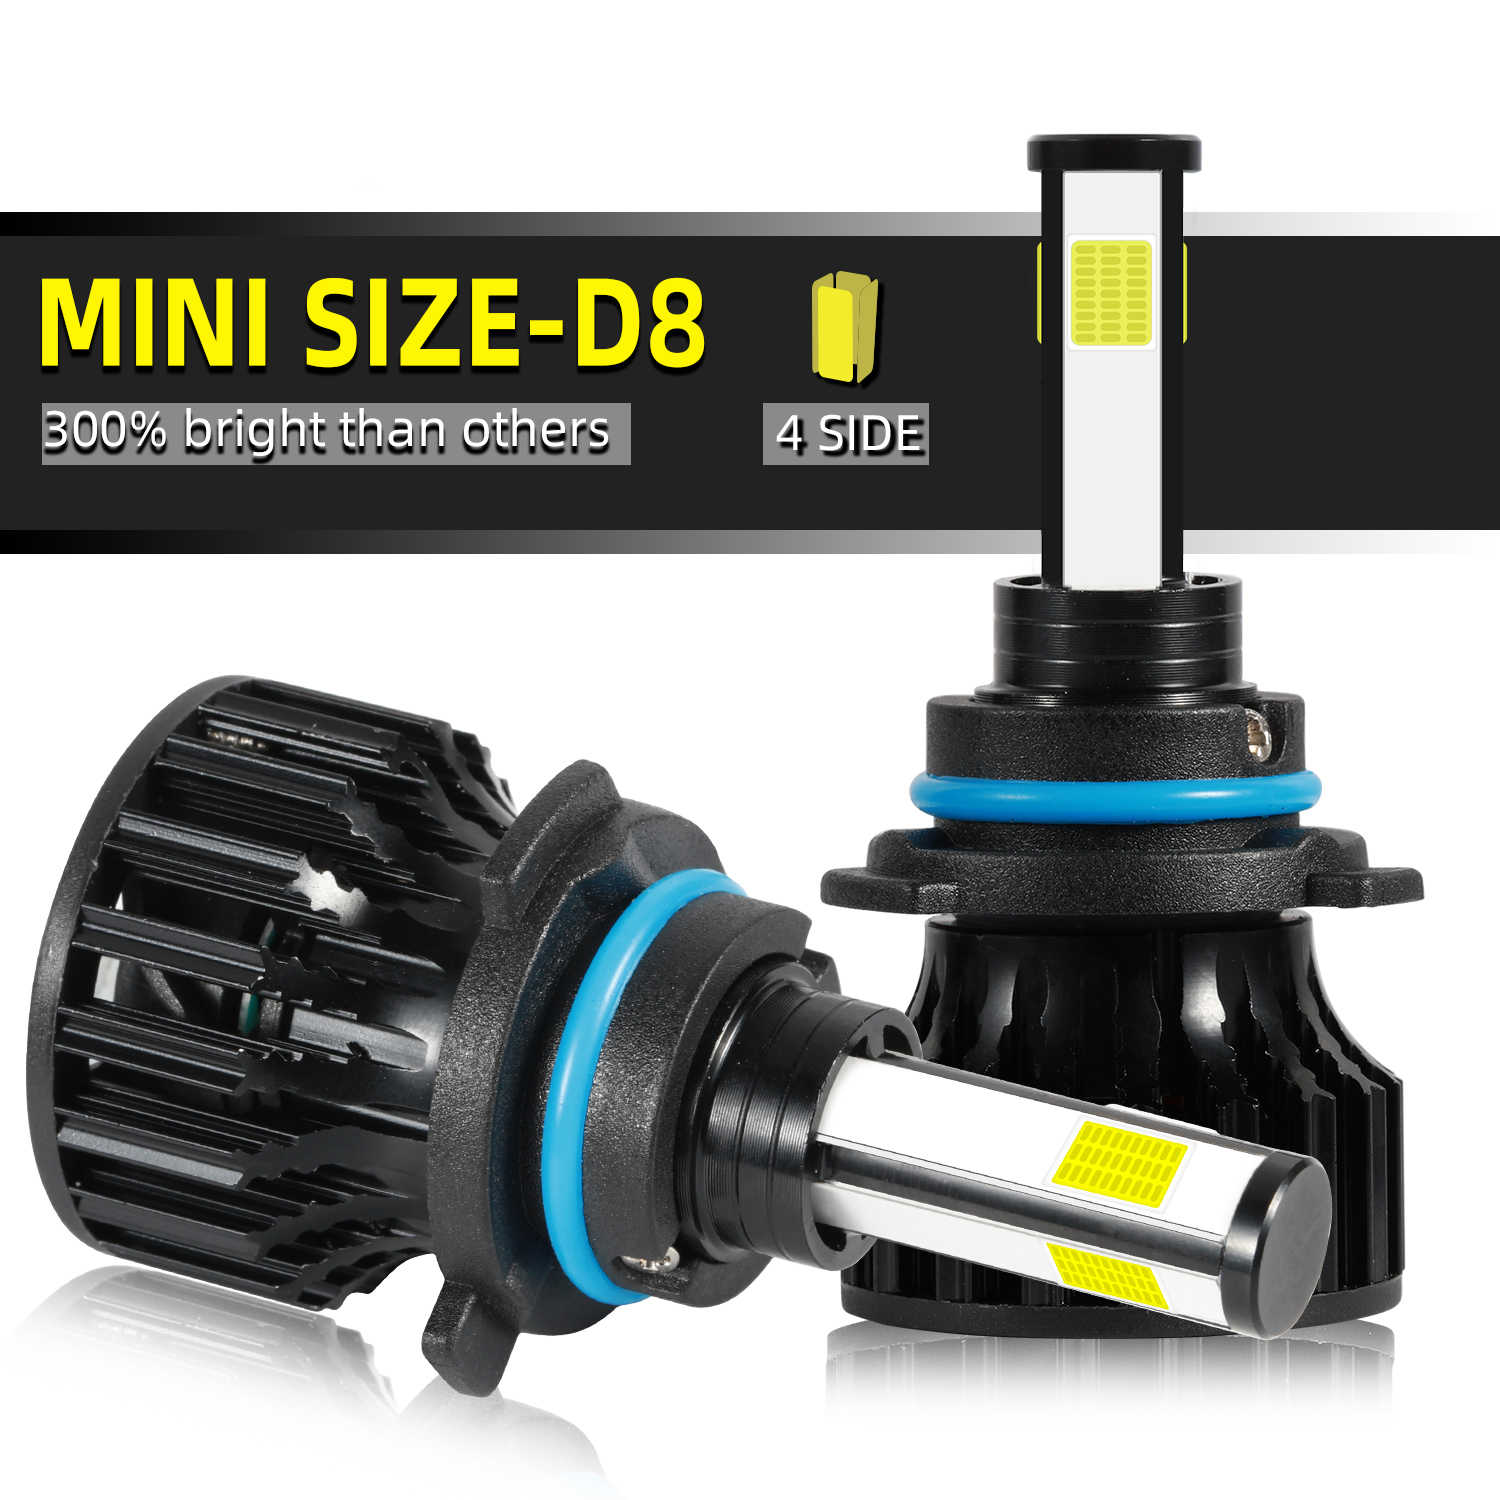 Mini Car Headlight H7 LED H11 LED 9006 9005 4 Side Bulb Car Headlight Fog Lamp 6500k 72W 8000 LM car accessries